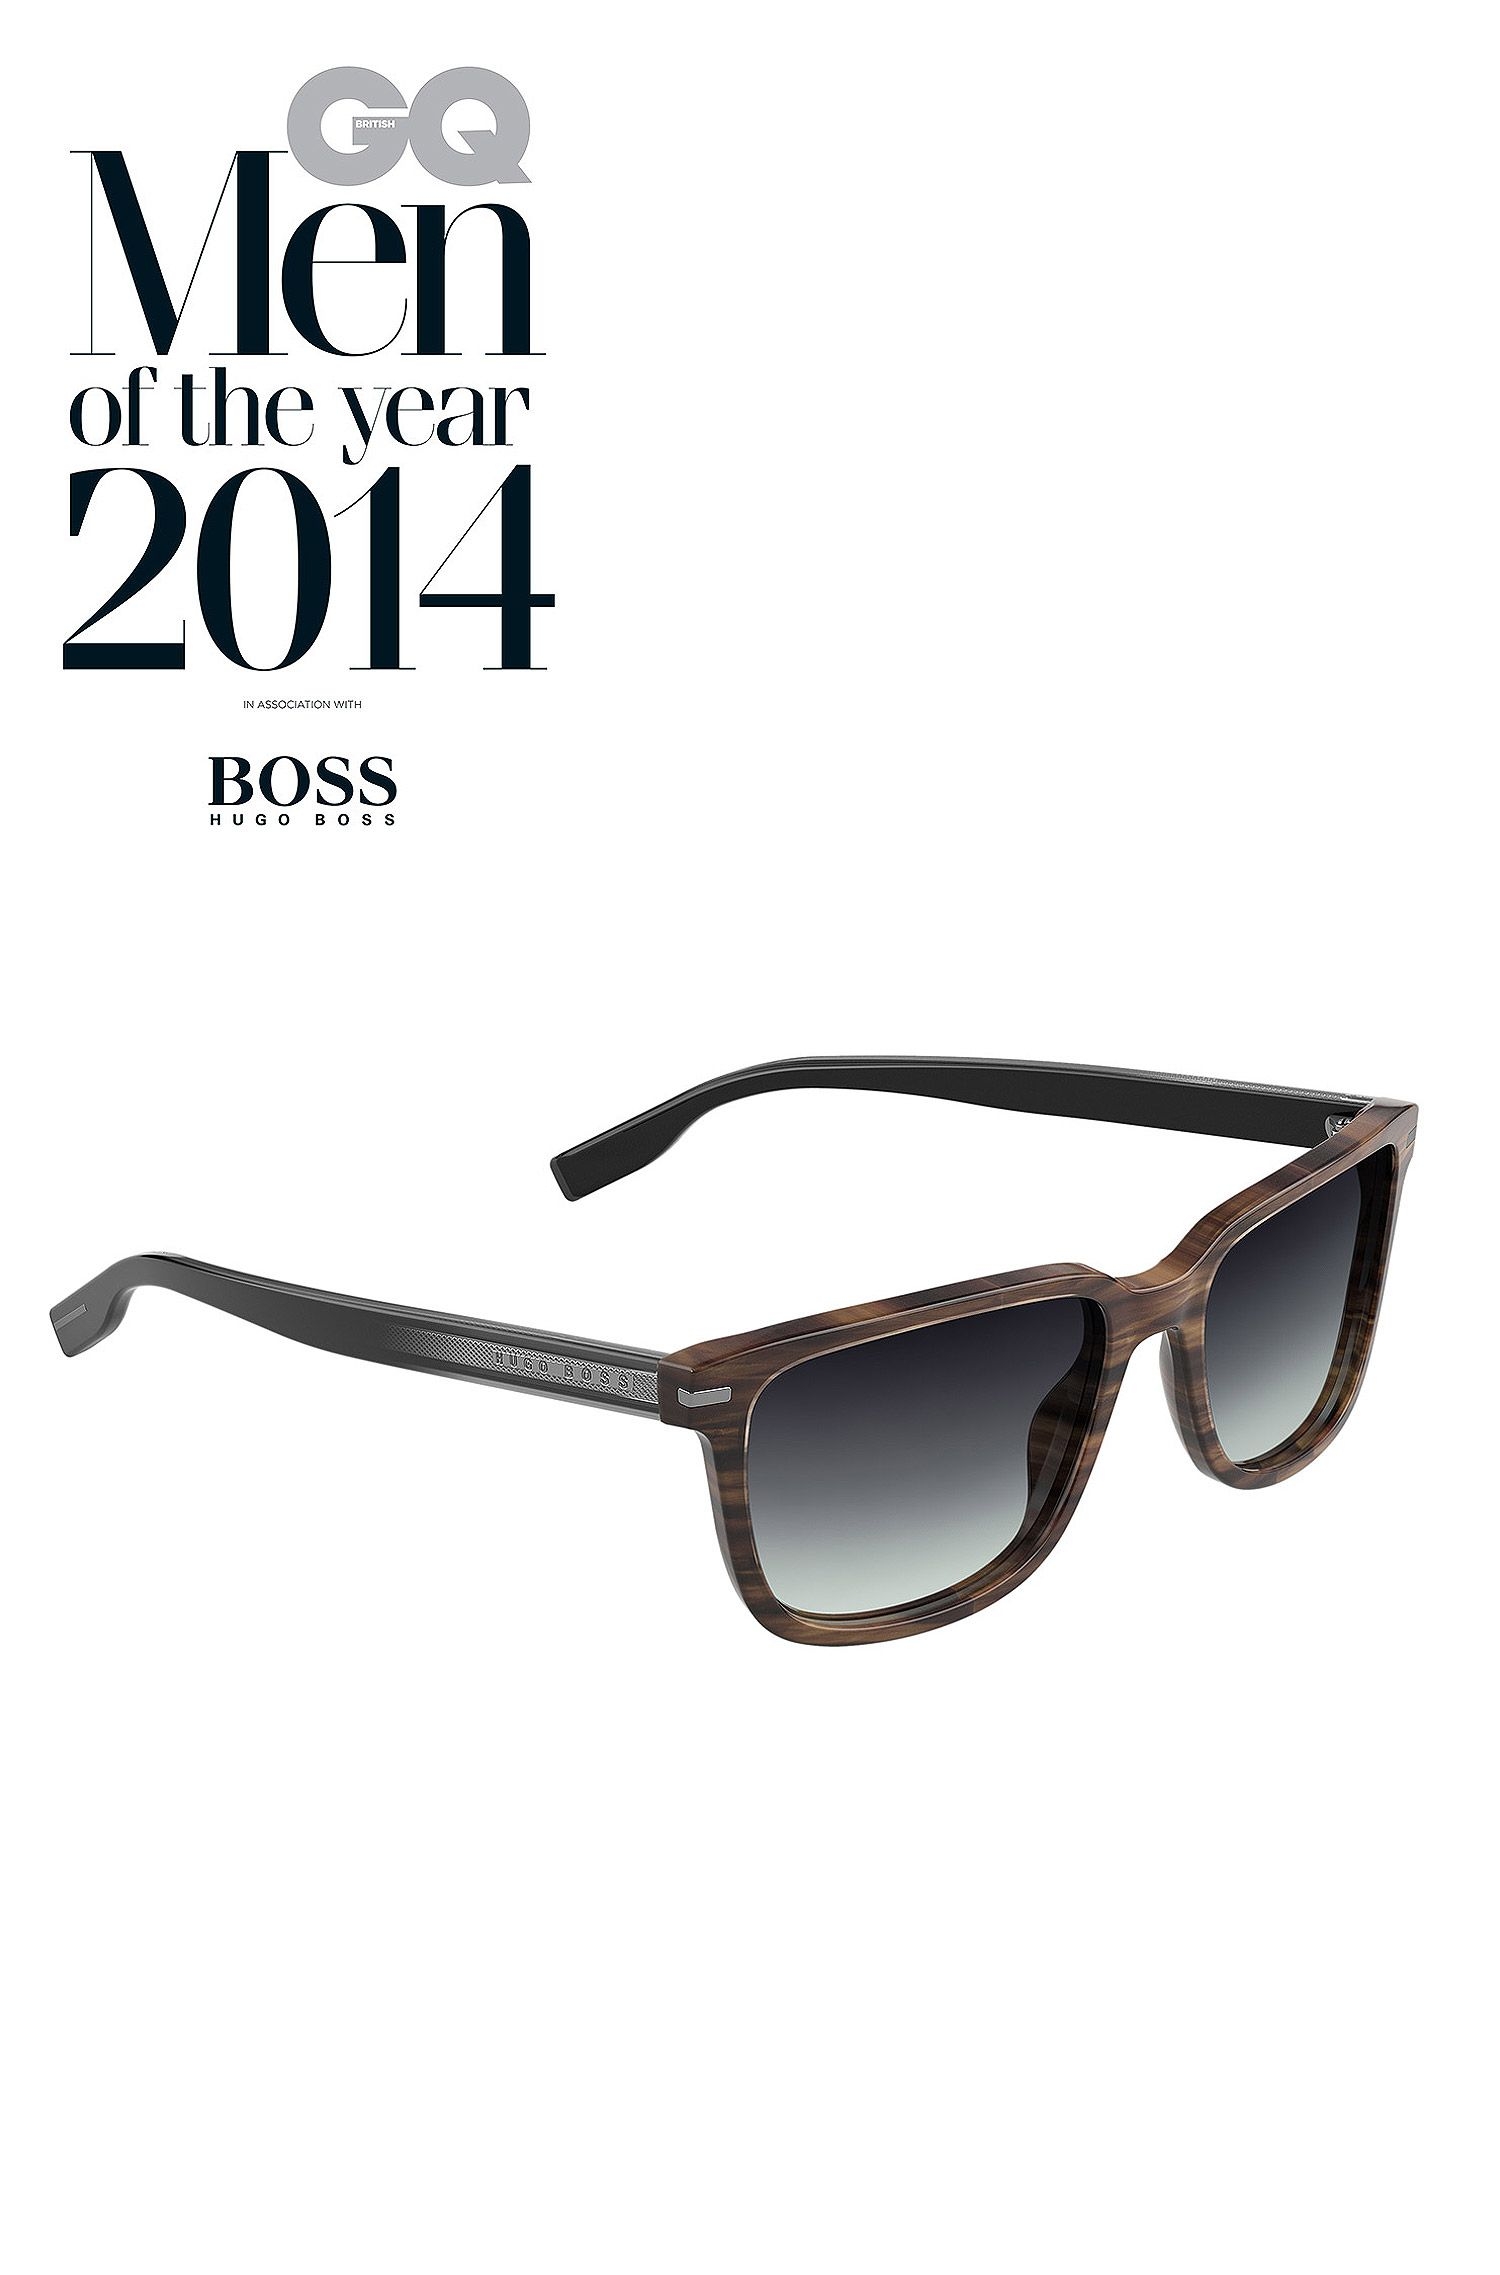 Sonnenbrille ´BOSS 0623/S`, GQ Man of the Year Style